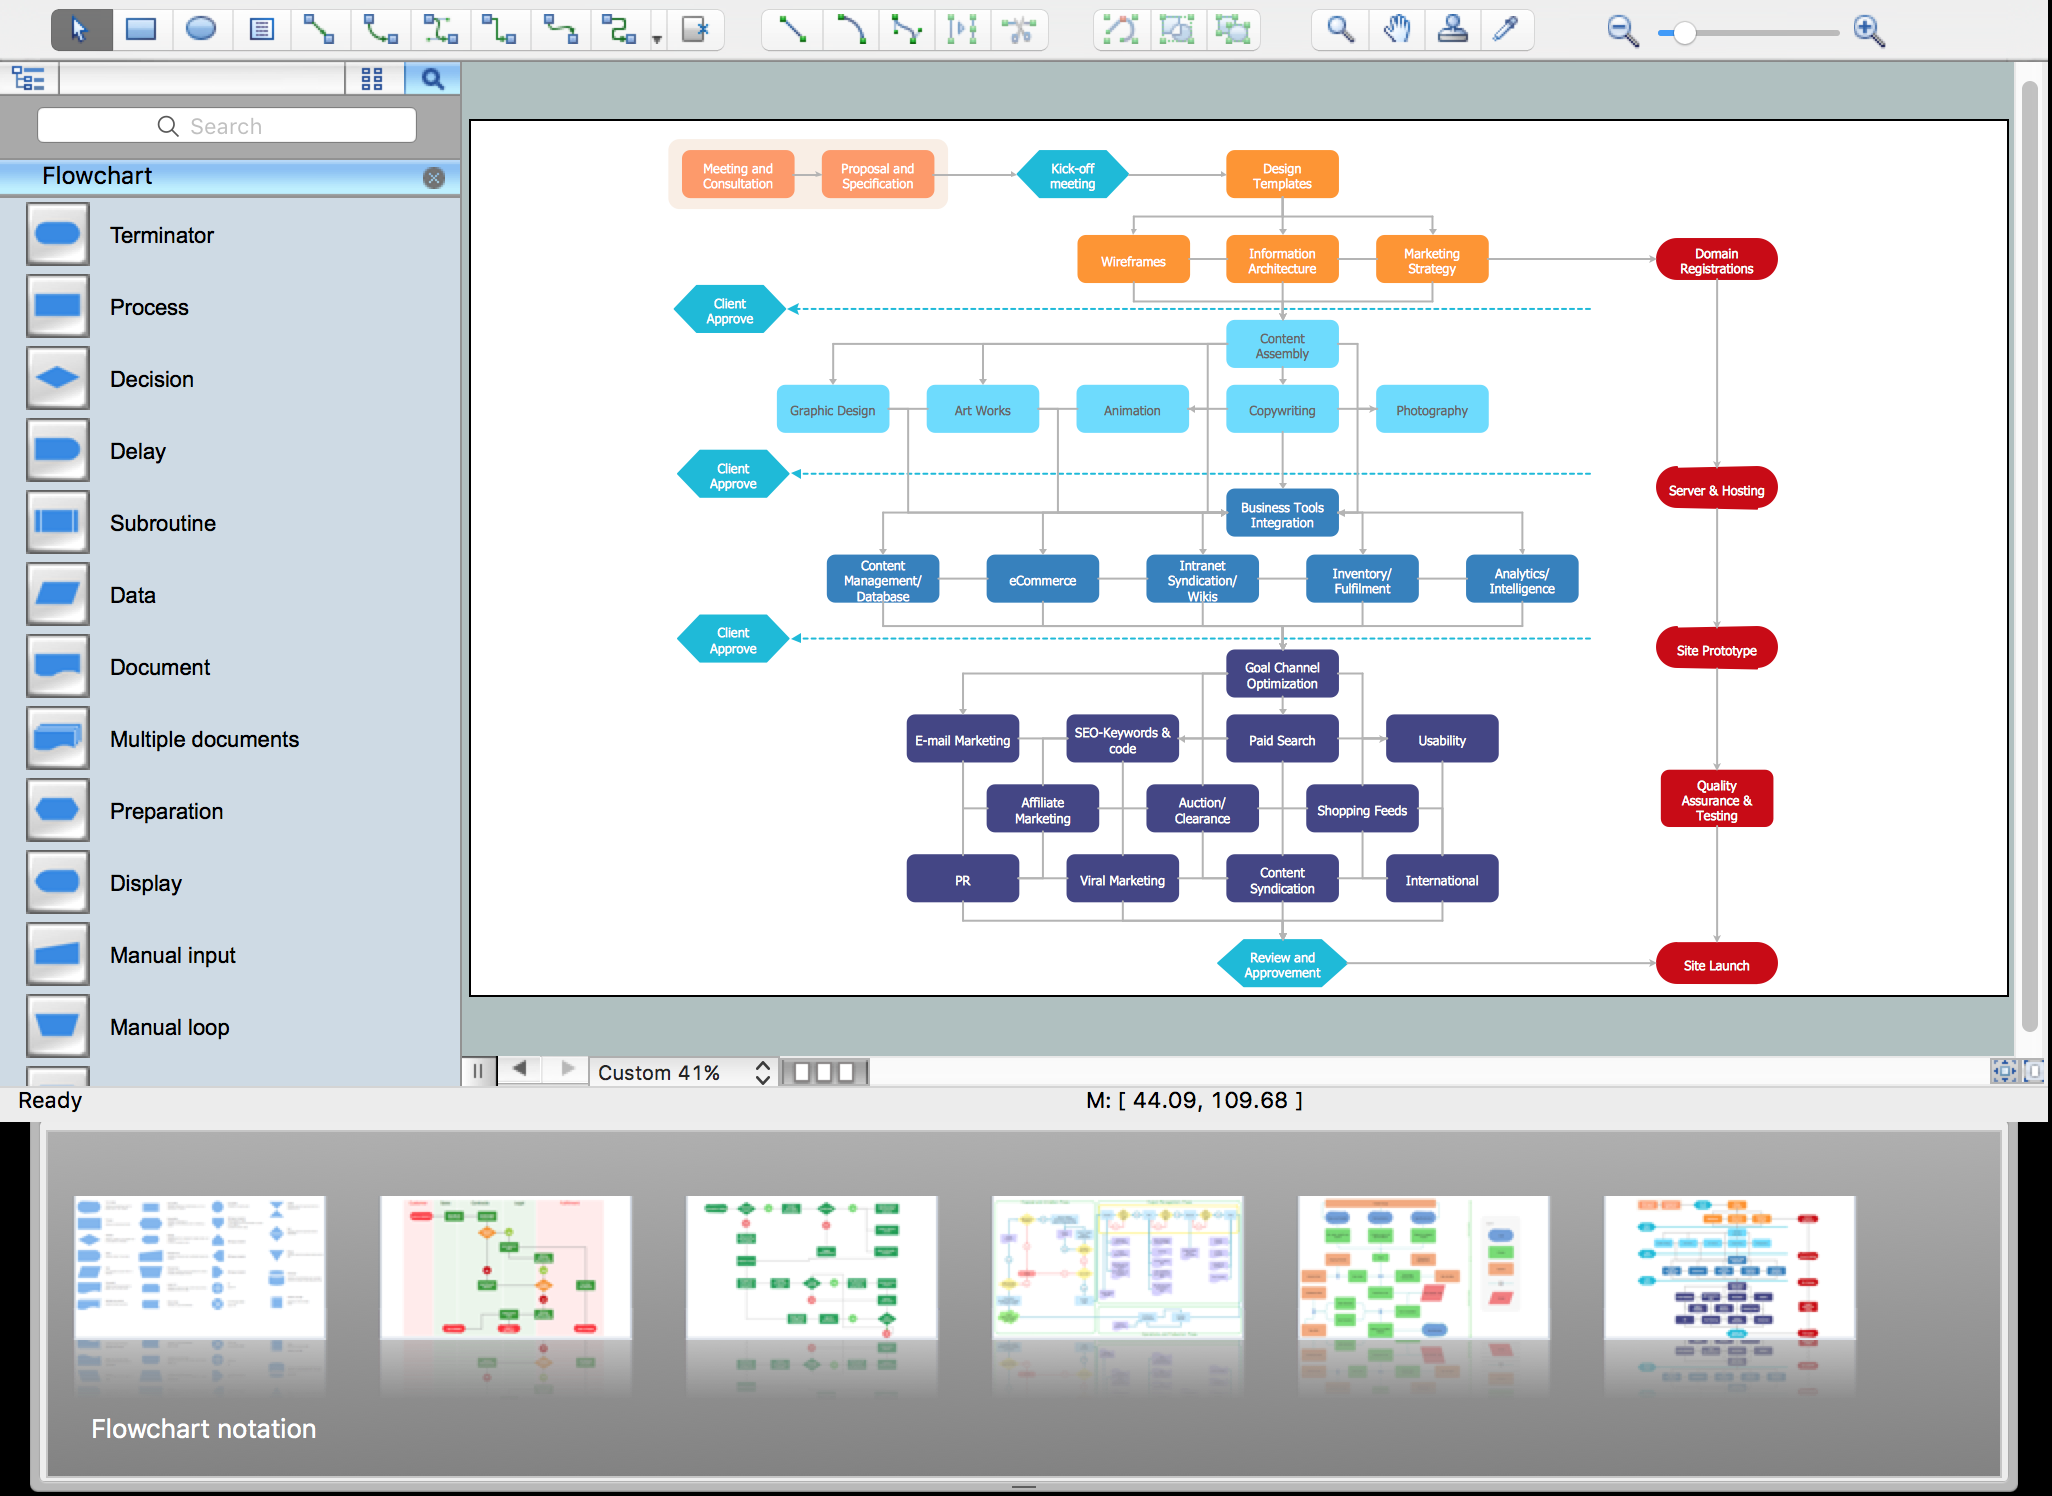 Flowchart Software with ConceptDraw PRO (mac), flowchart symbols, process flow diagram